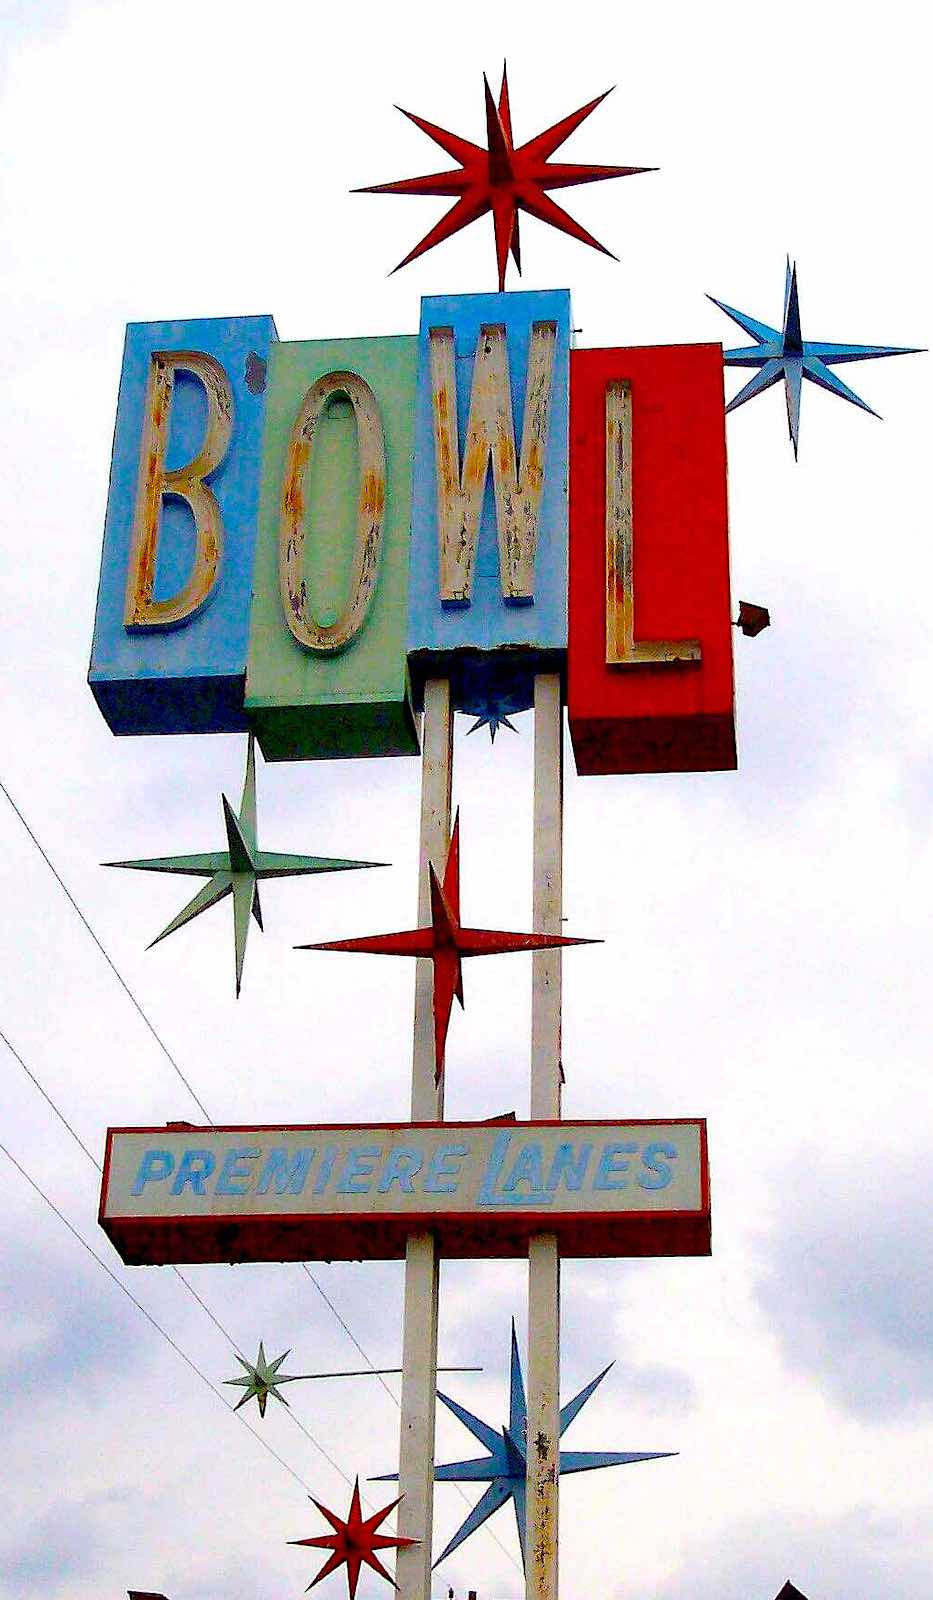 1950s bowling lanes sign